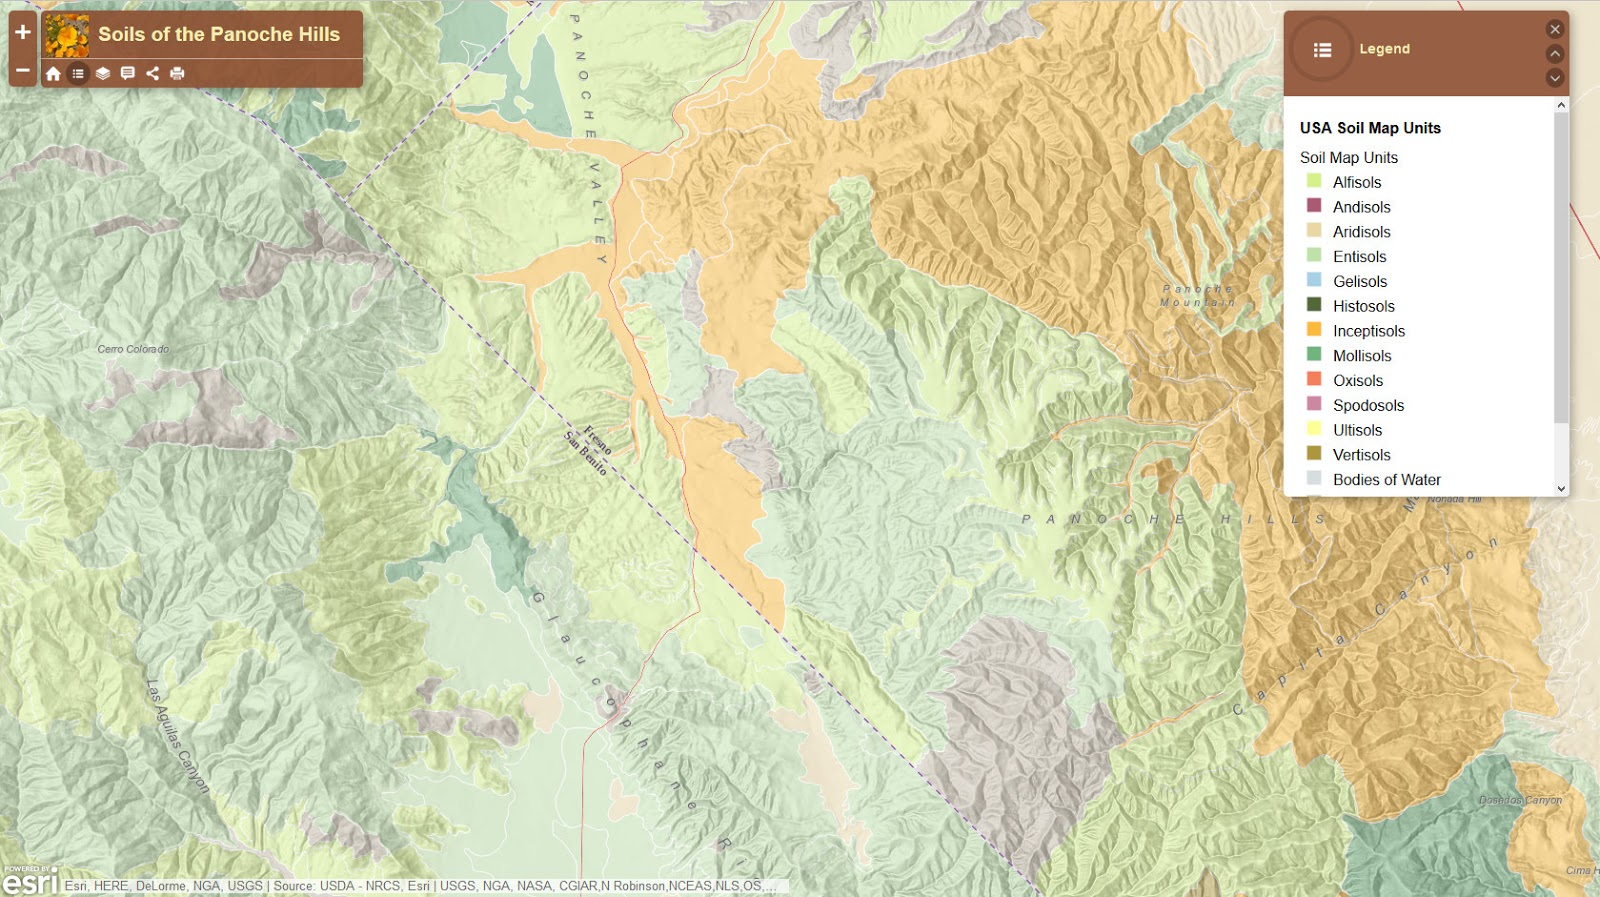 http://www.arcgis.com/apps/Viewer/index.html?appid=554cd414f2e64a57bb9dd913cc7407c9